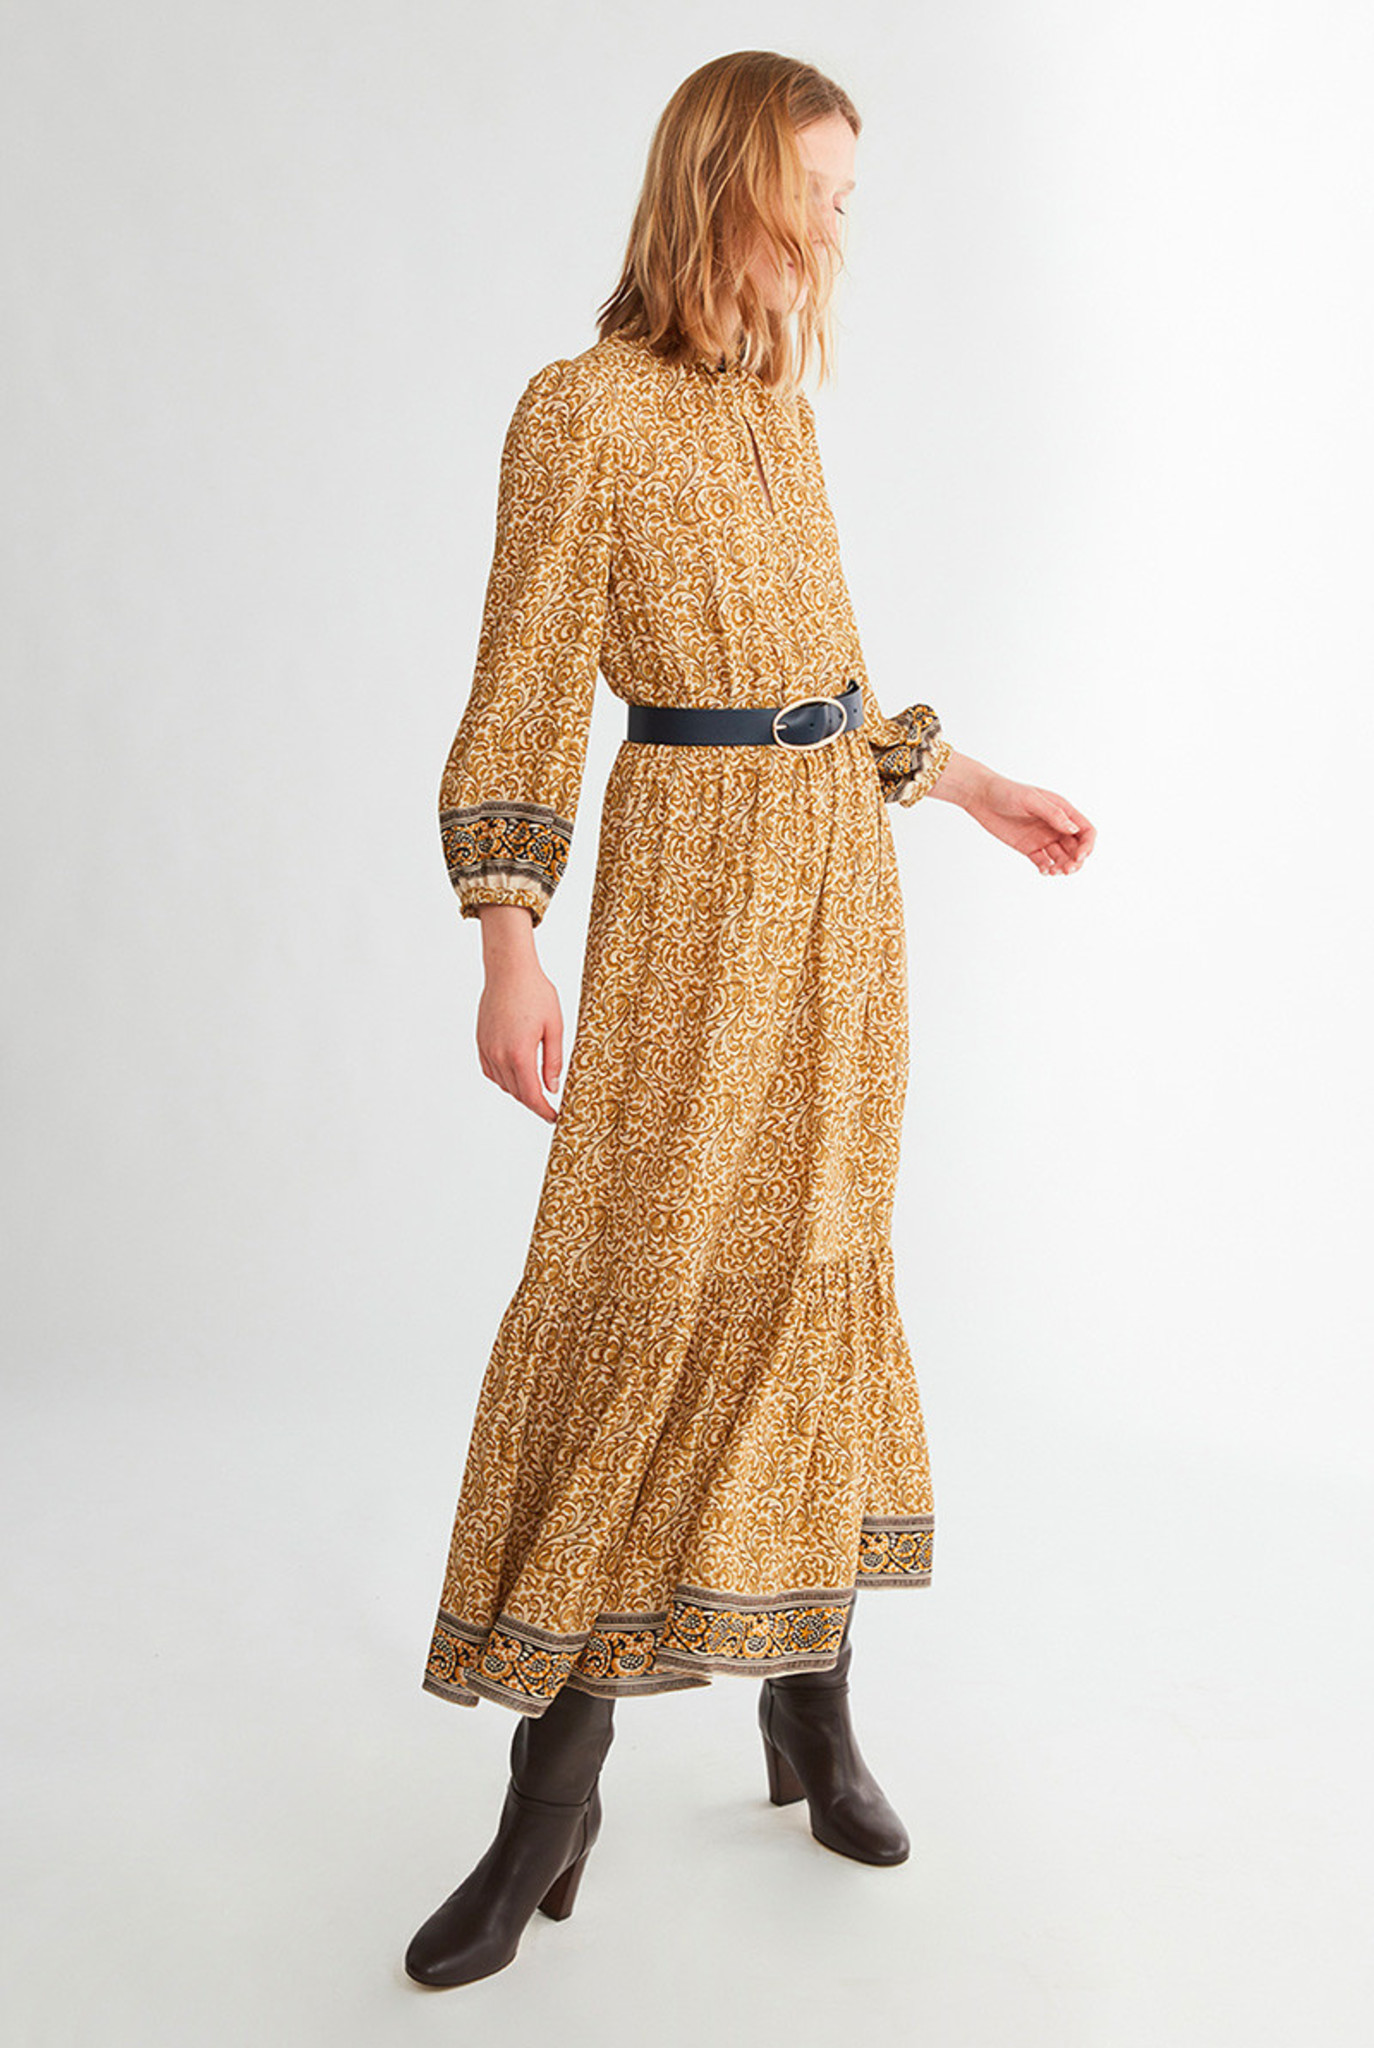 Noisette dress Ochre